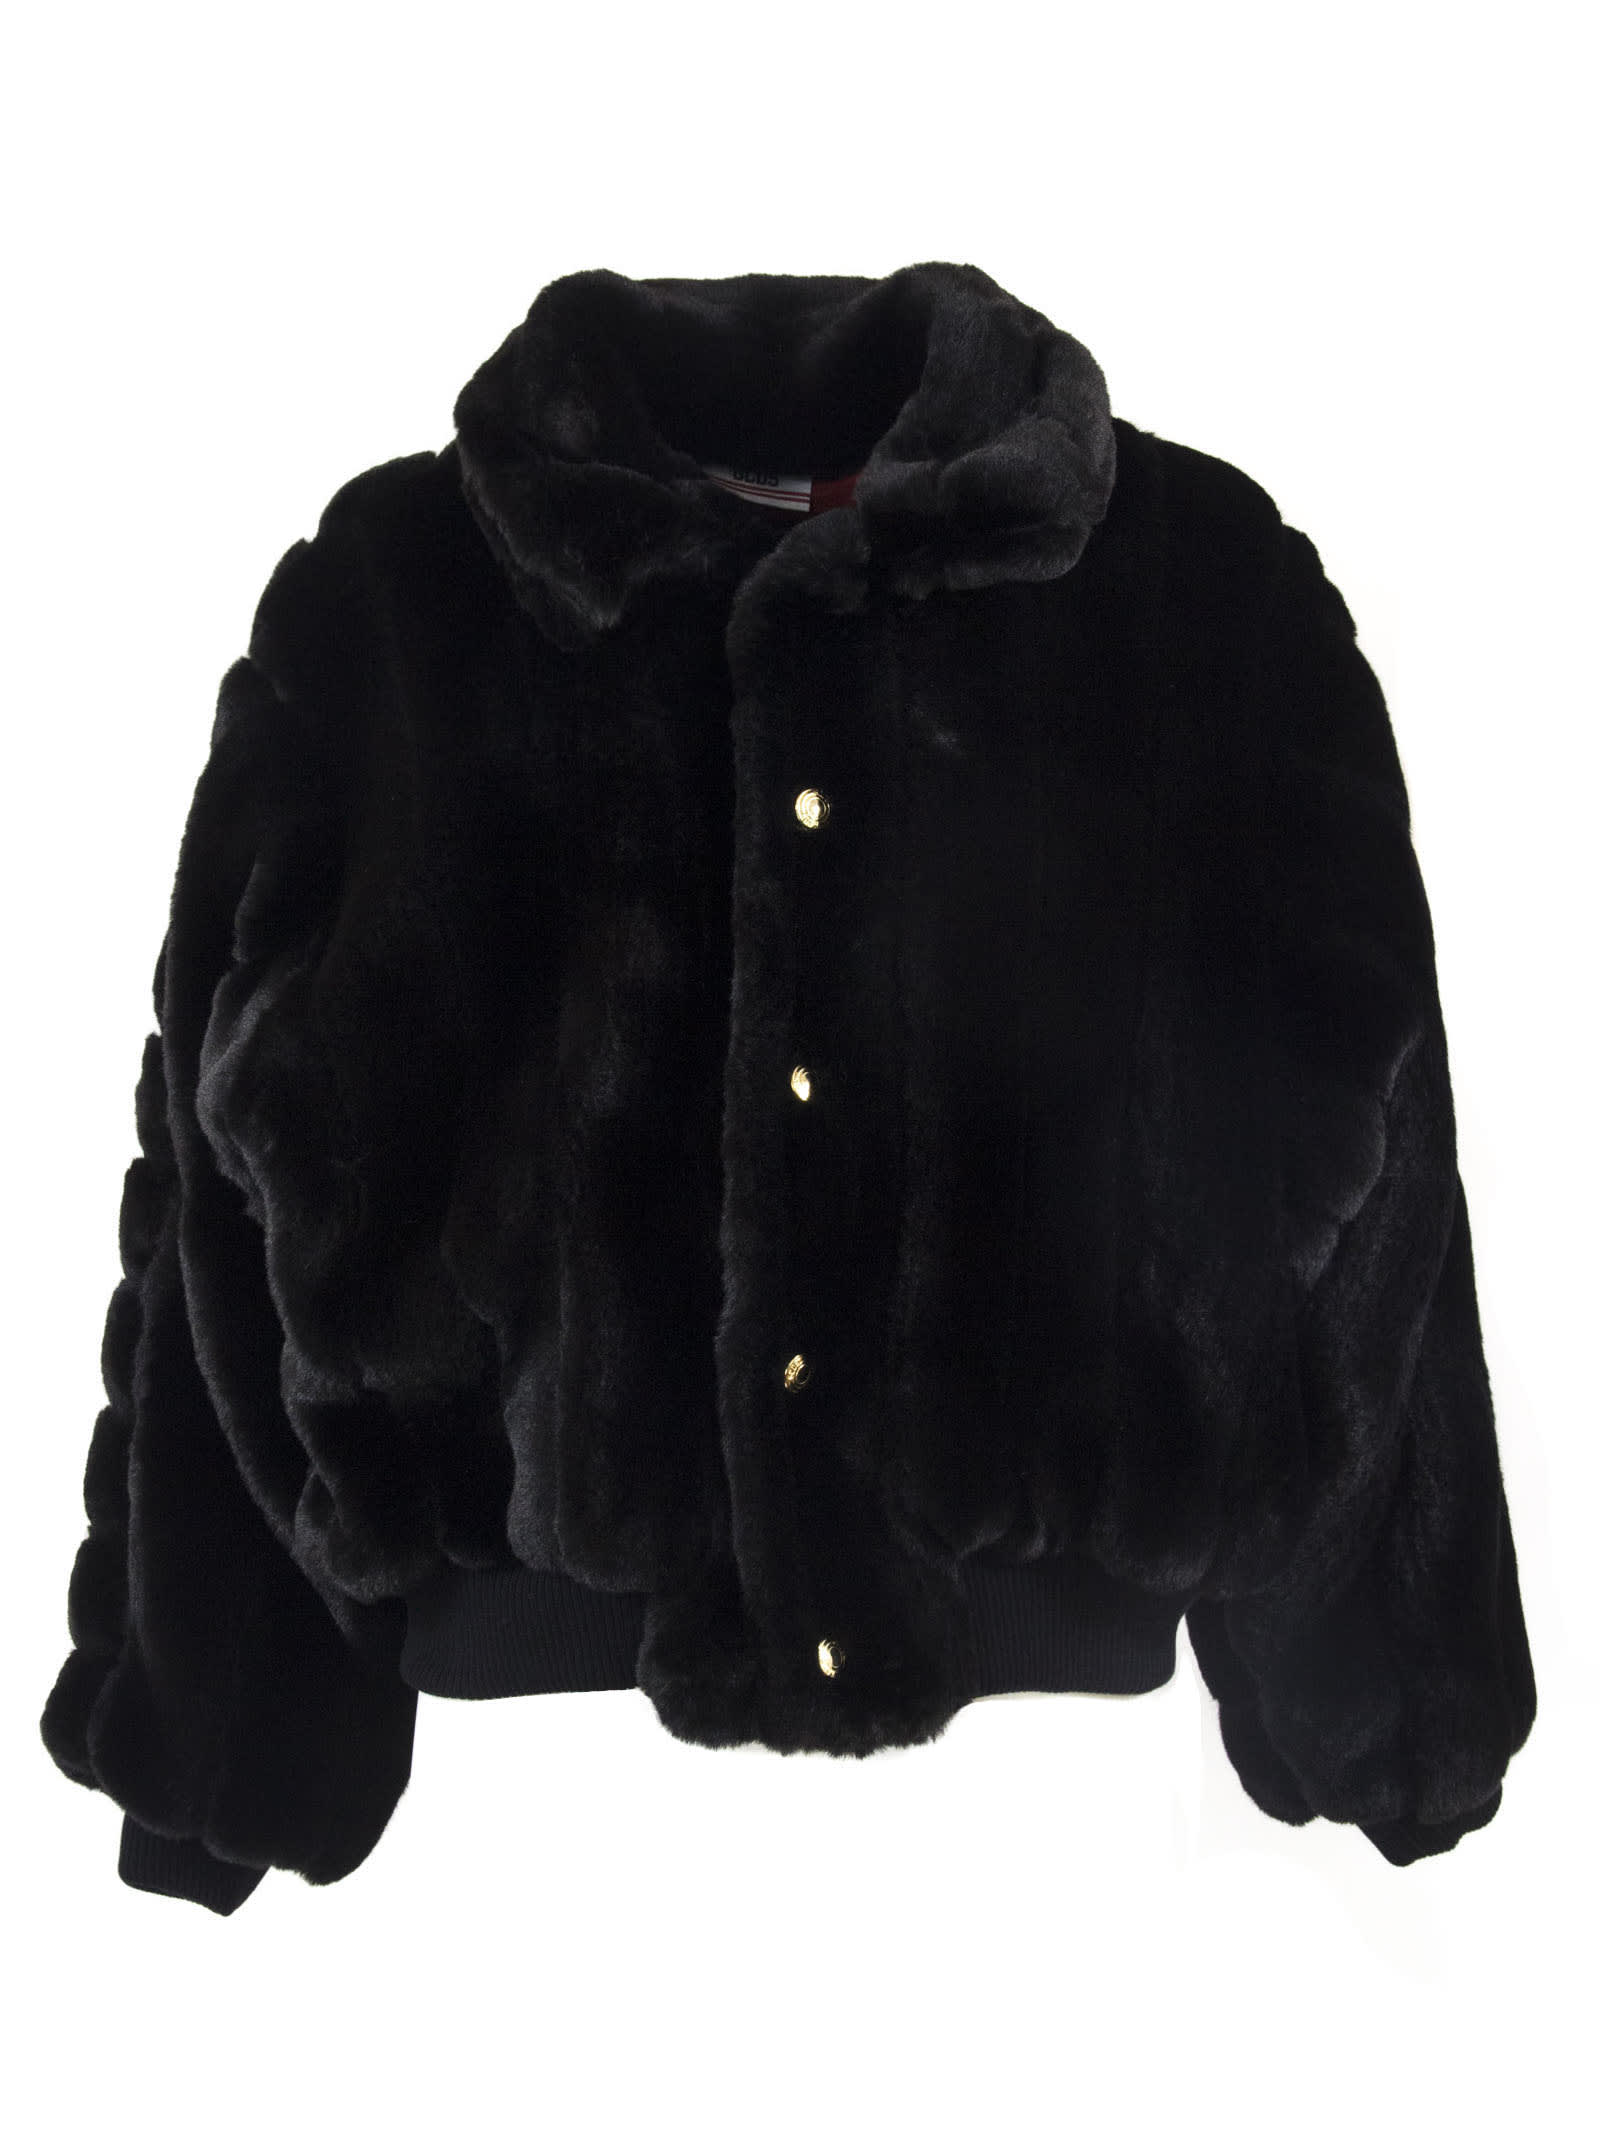 GCDS Black Oversized Faux Fur Jacket